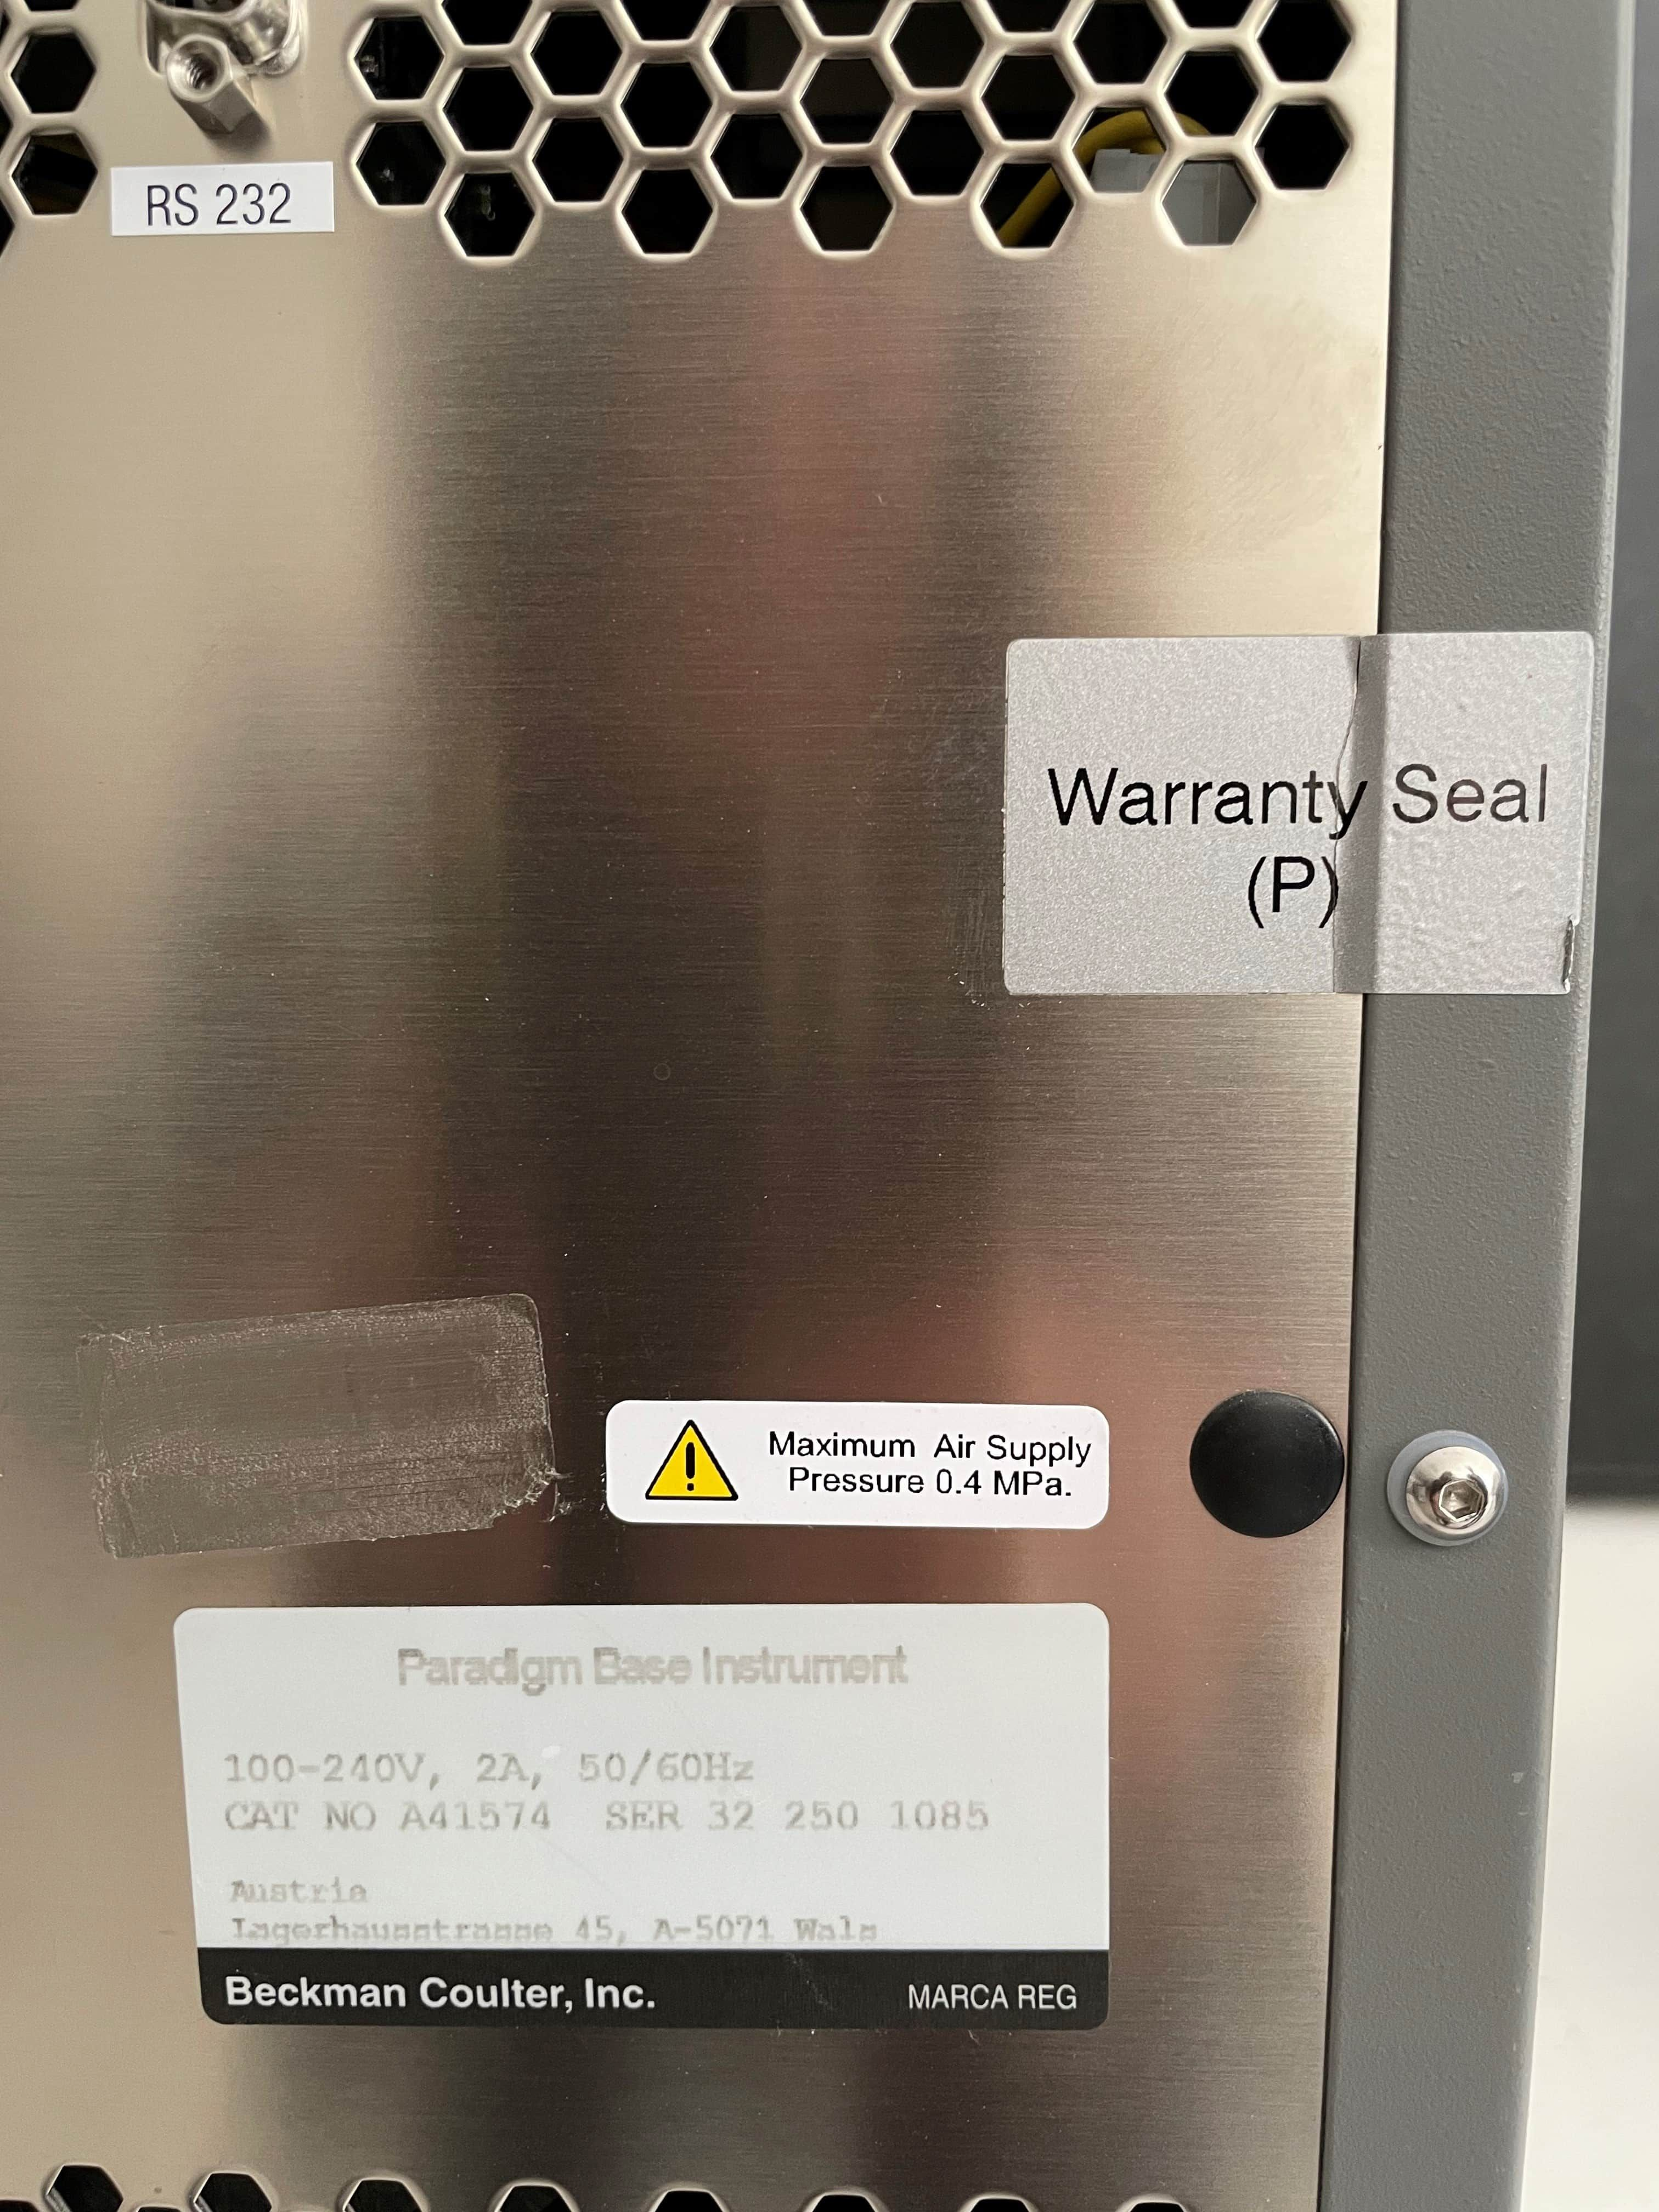 Beckman Coulter Paradigm Microplate Reader with Warranty